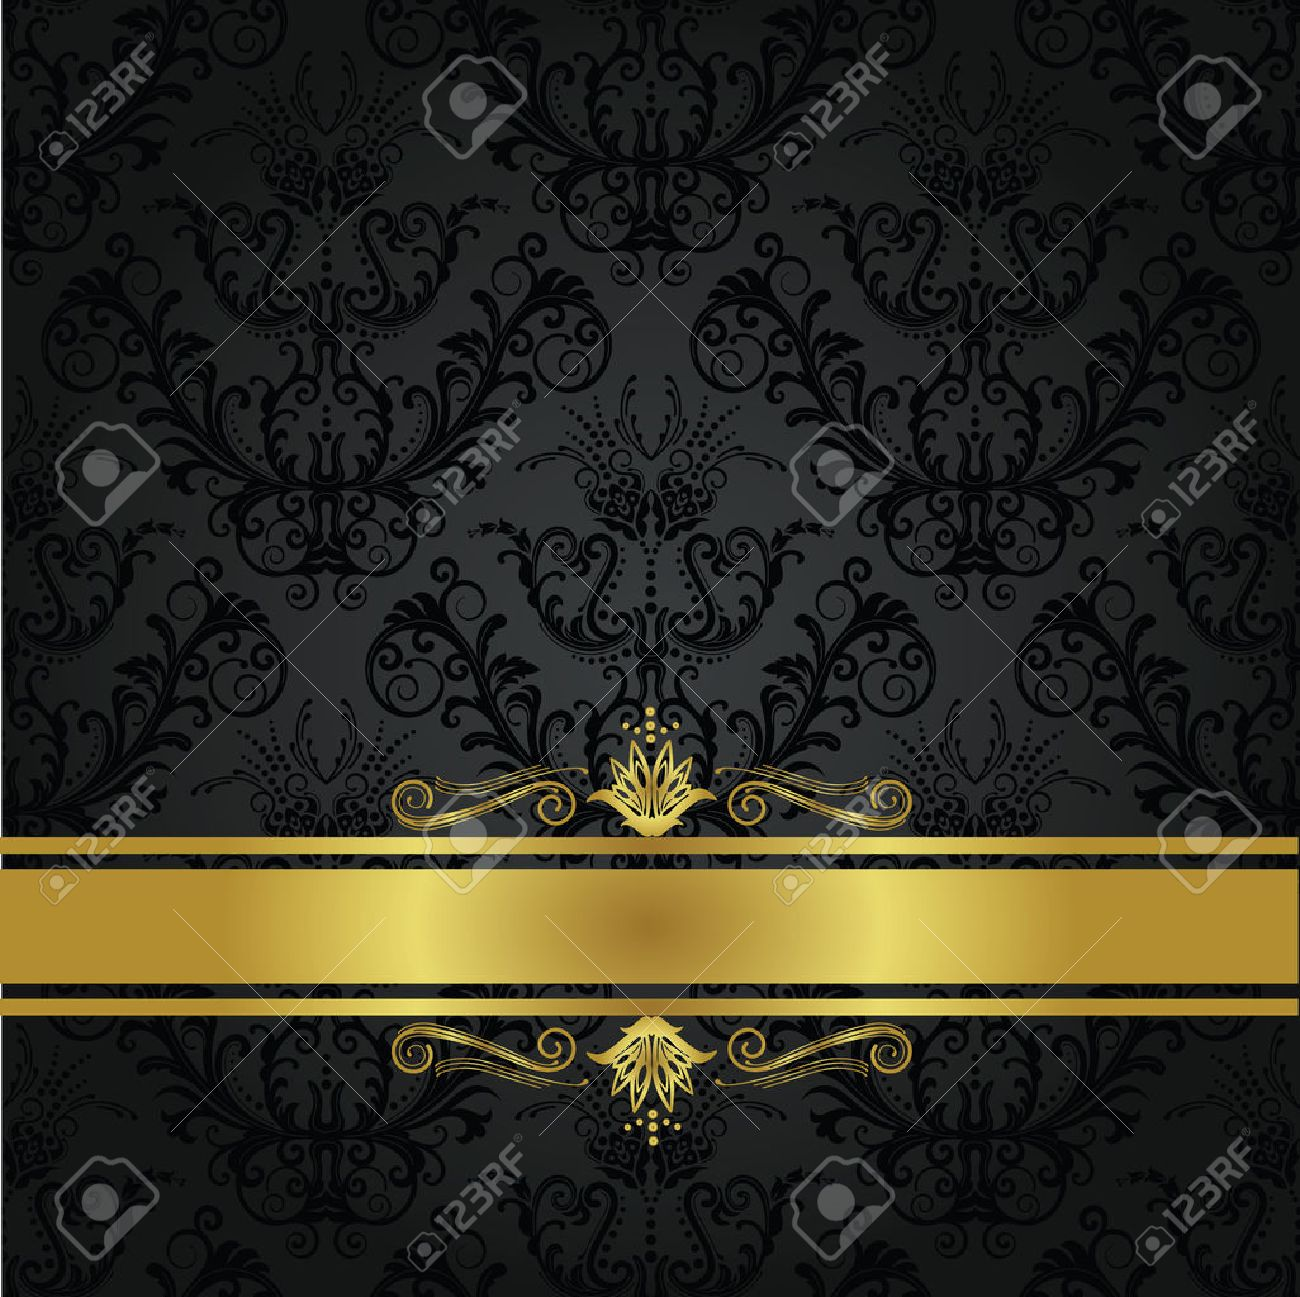 black lace background.html